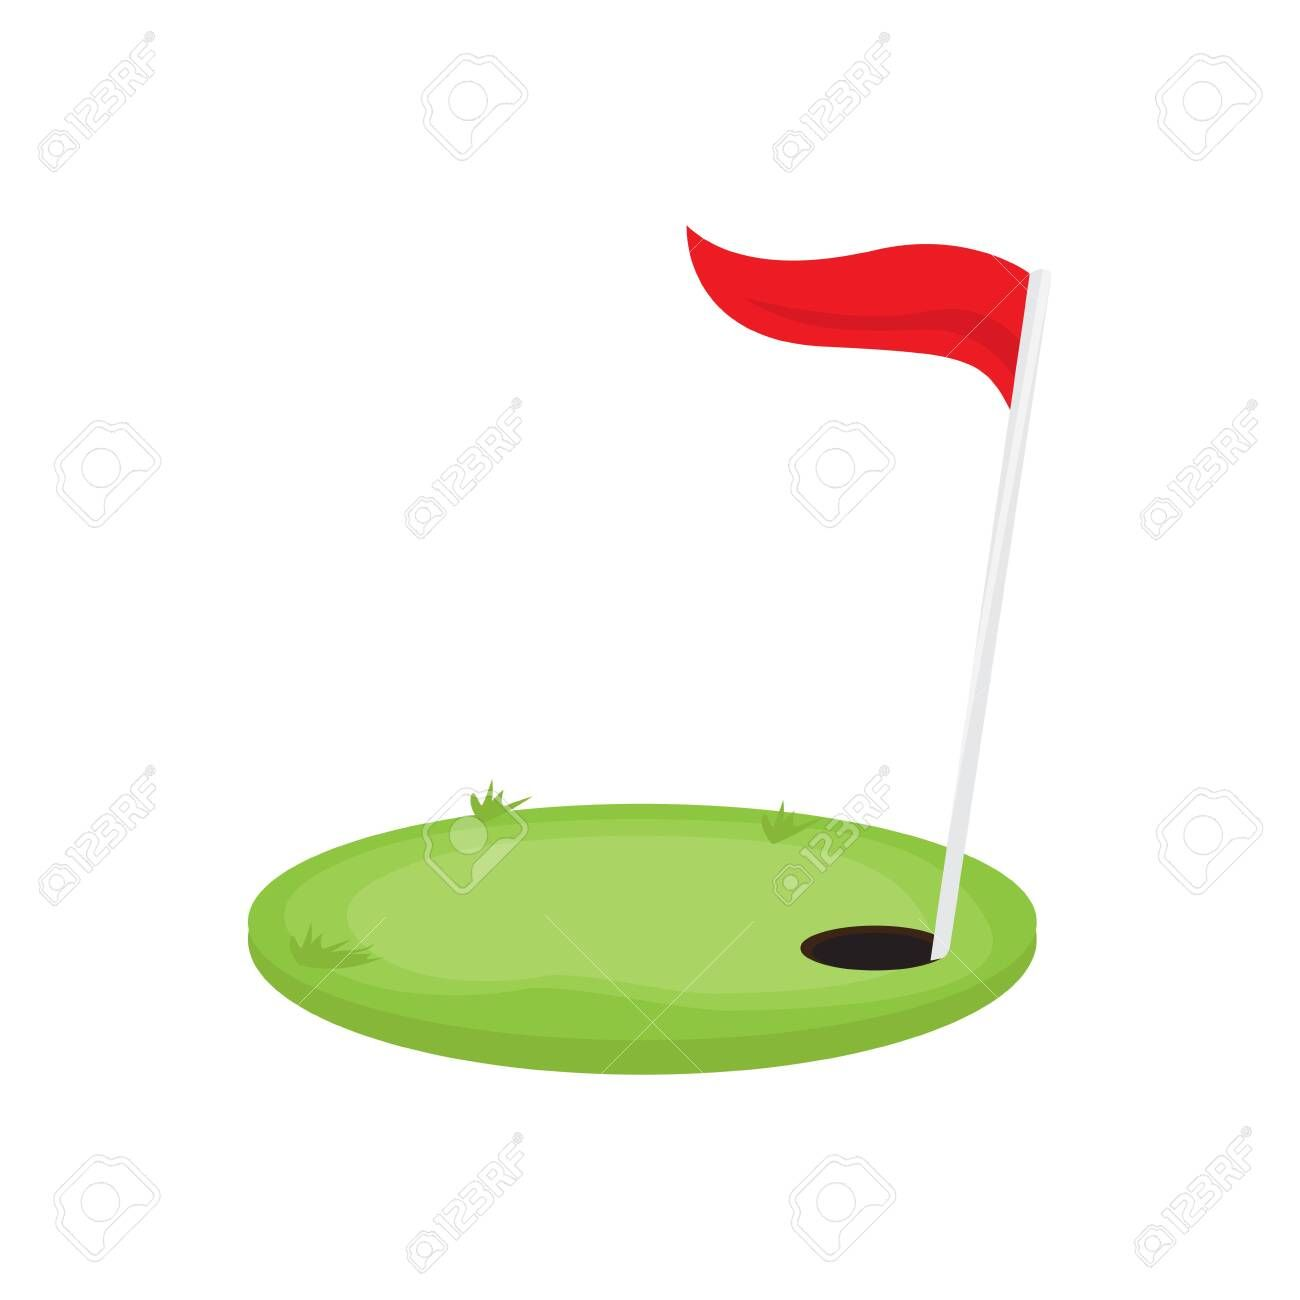 Golf Hole With A Red Flag Vector Illustration Design Illustration Sponsored Red Flag Golf Vector Illustration Design Illustration Design Symbol Logo